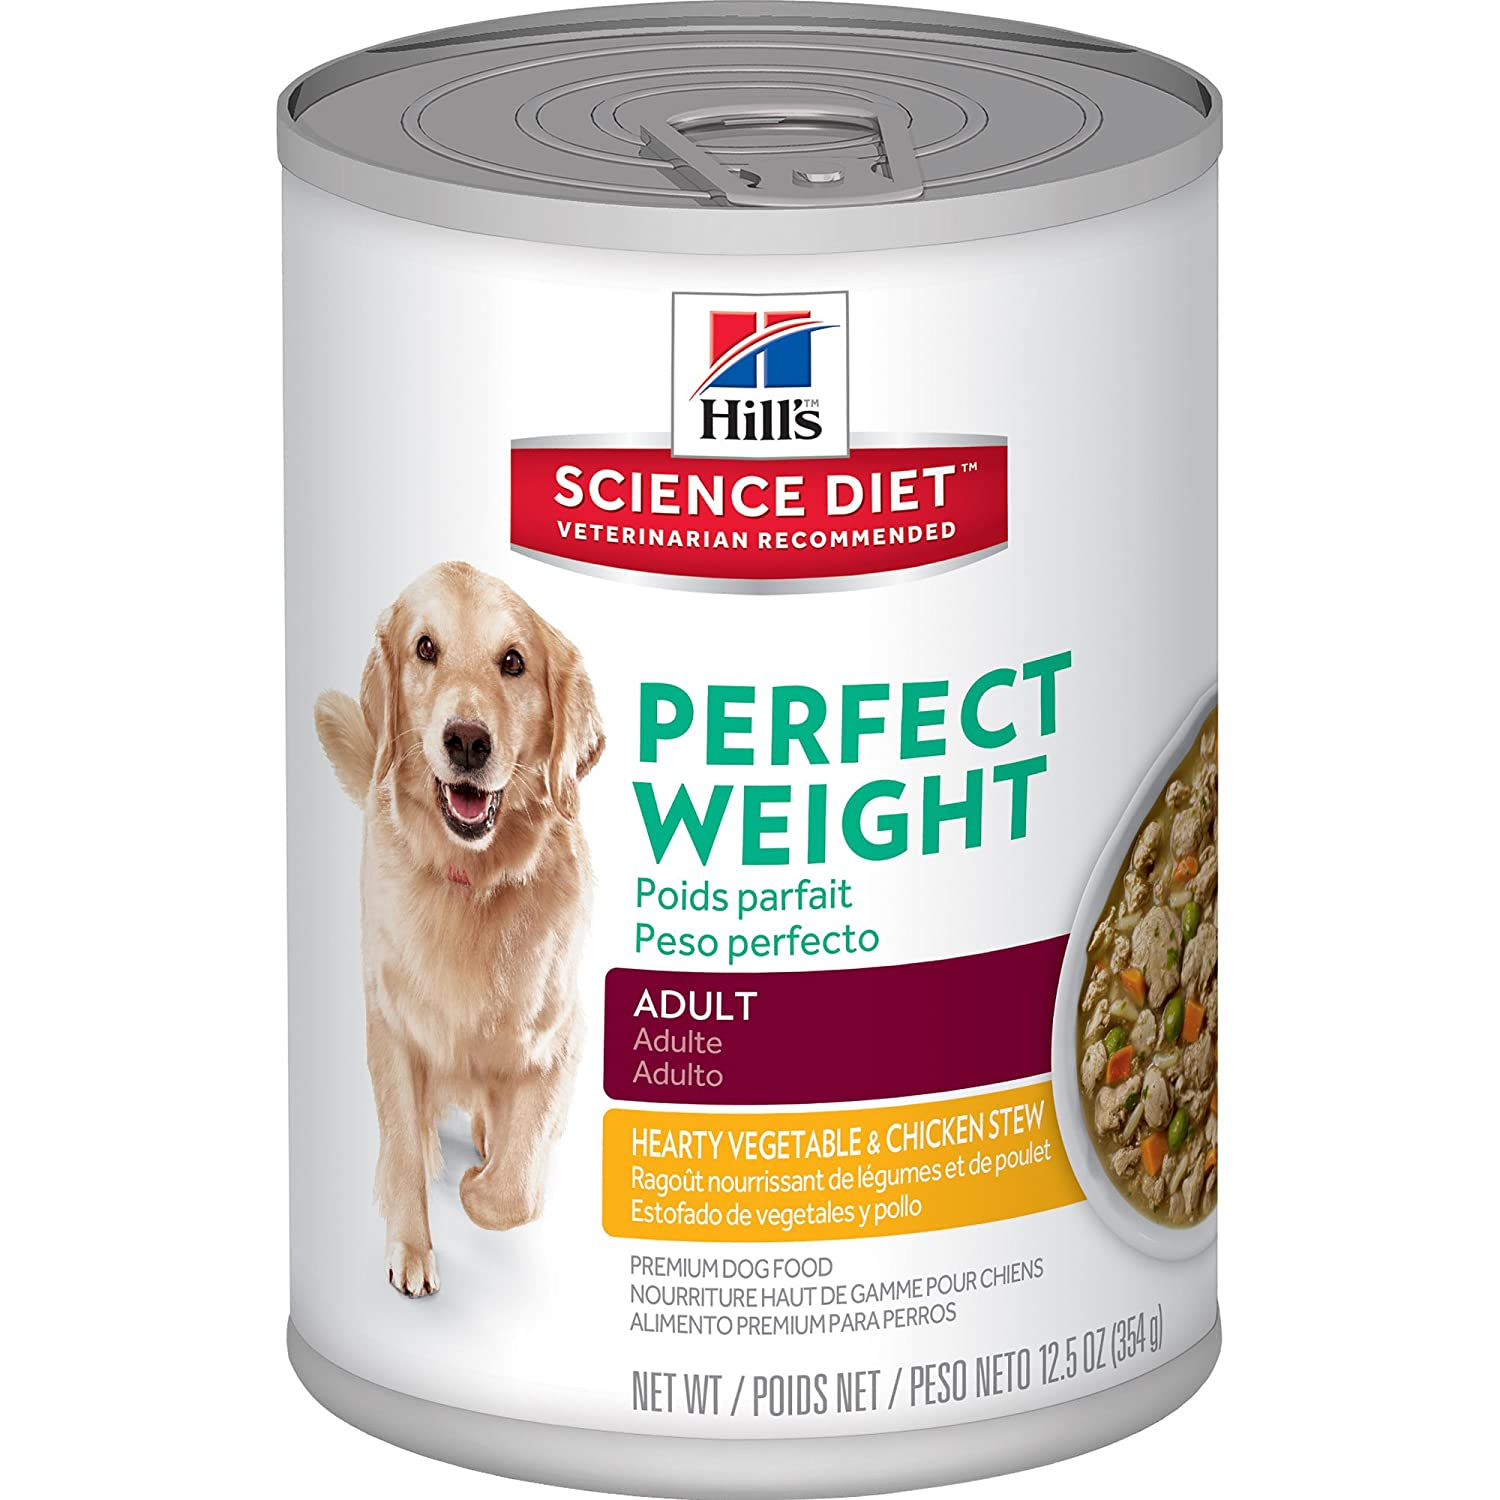 Hill's Science Diet Perfect Weight Canned Dog Food, 12-Pack